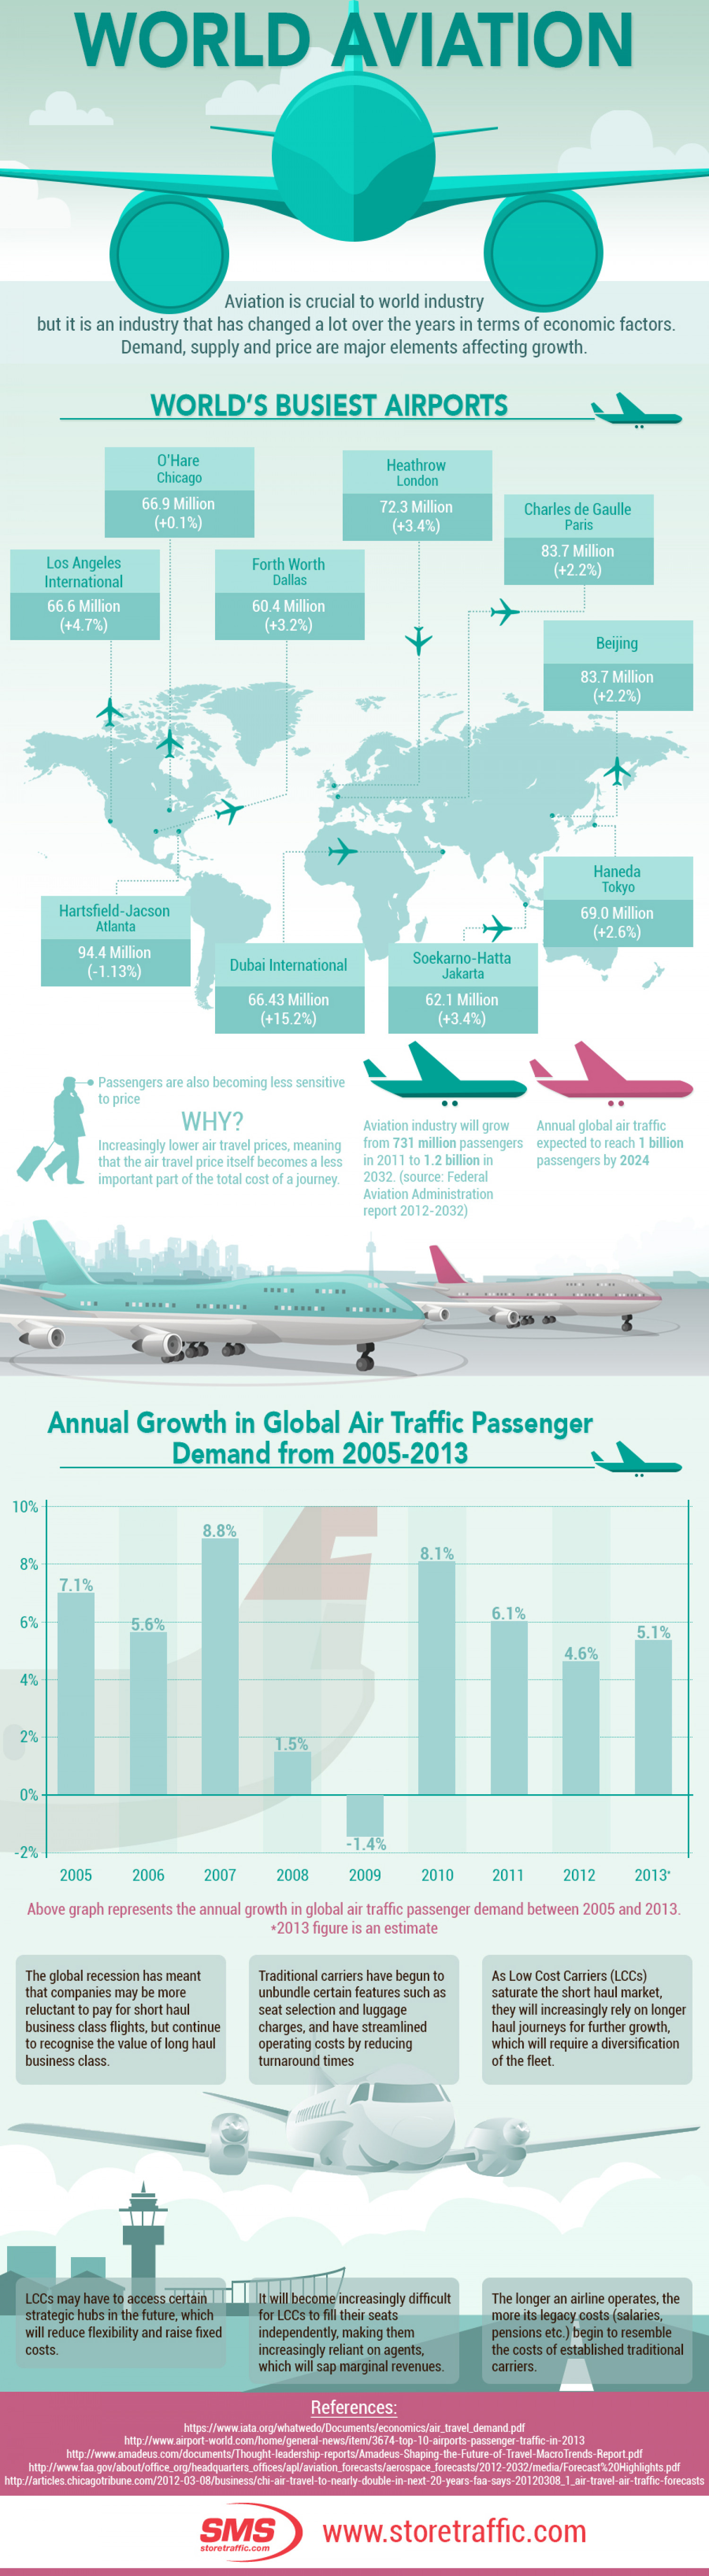 World Aviation Infographic